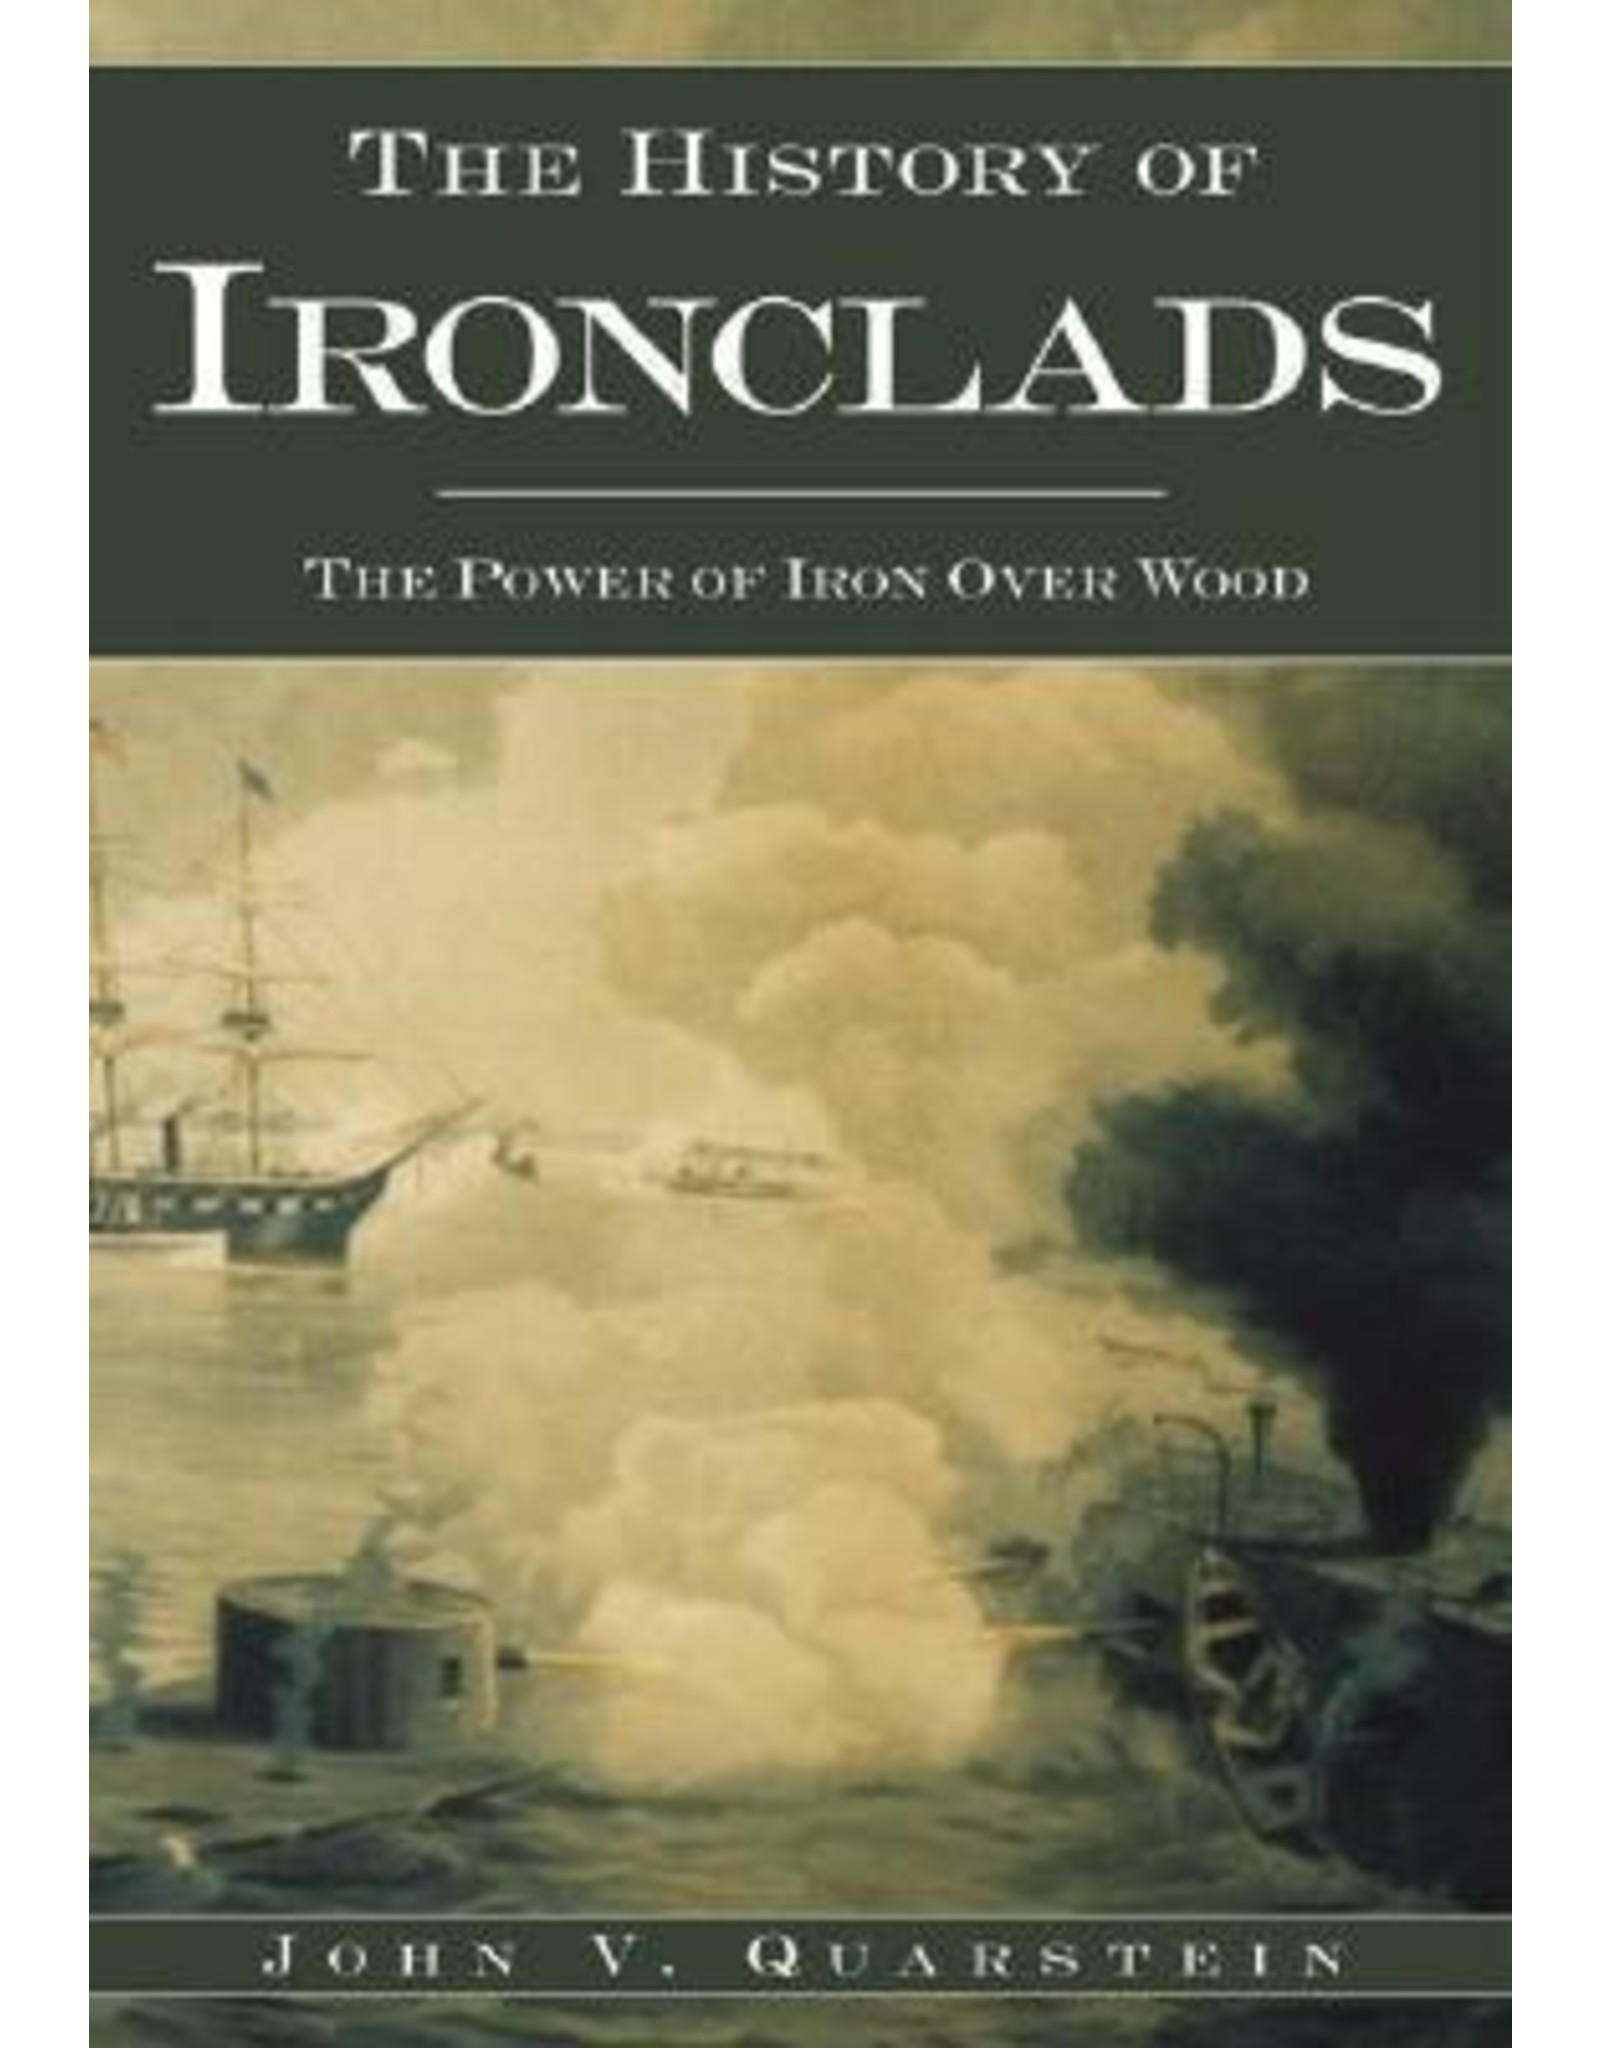 A History of Ironclads